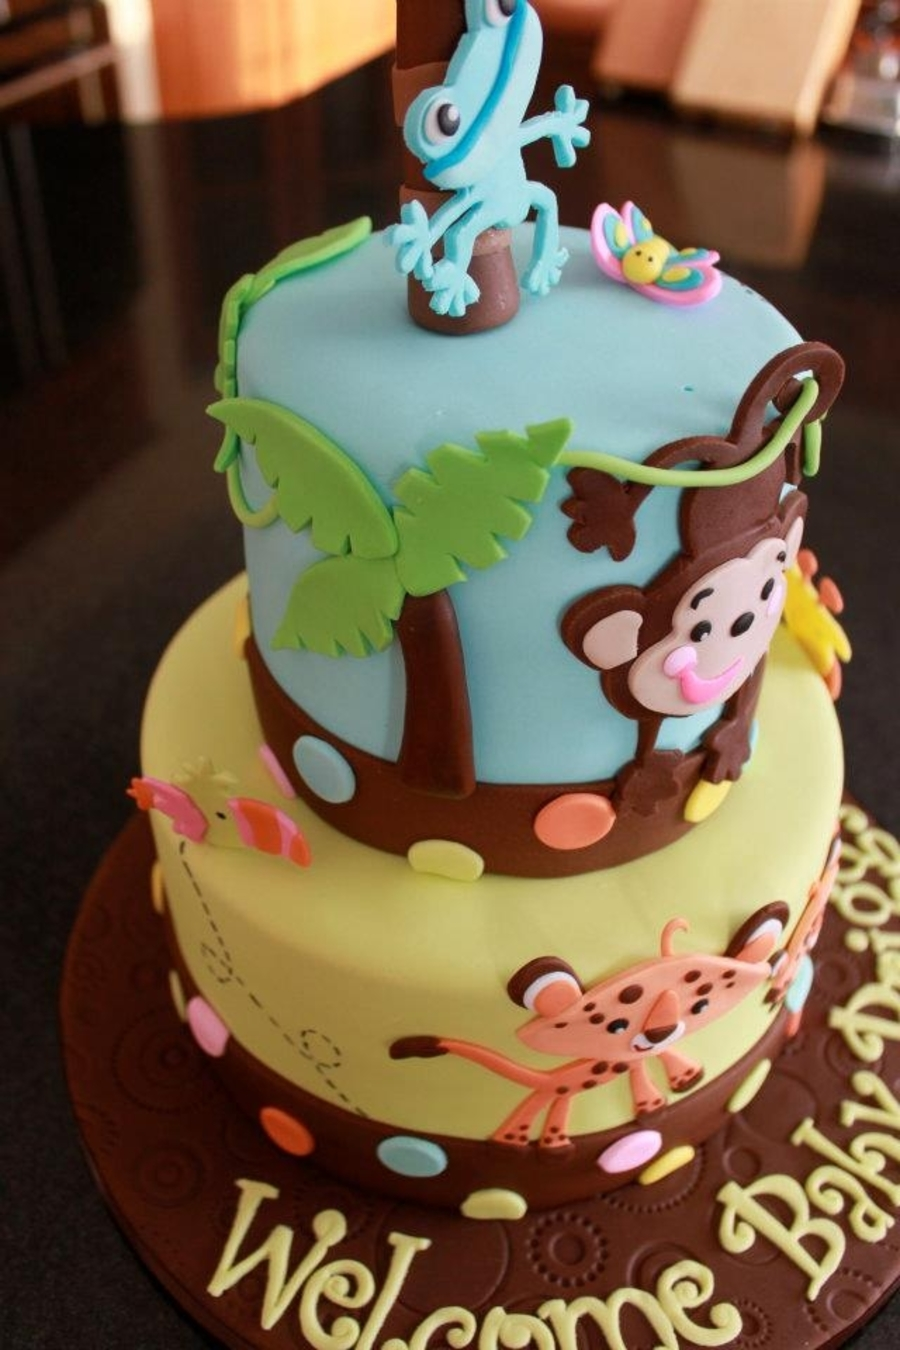 This Cake Was Inspired By The Decor For The Baby Shower Made By Fisher Price .